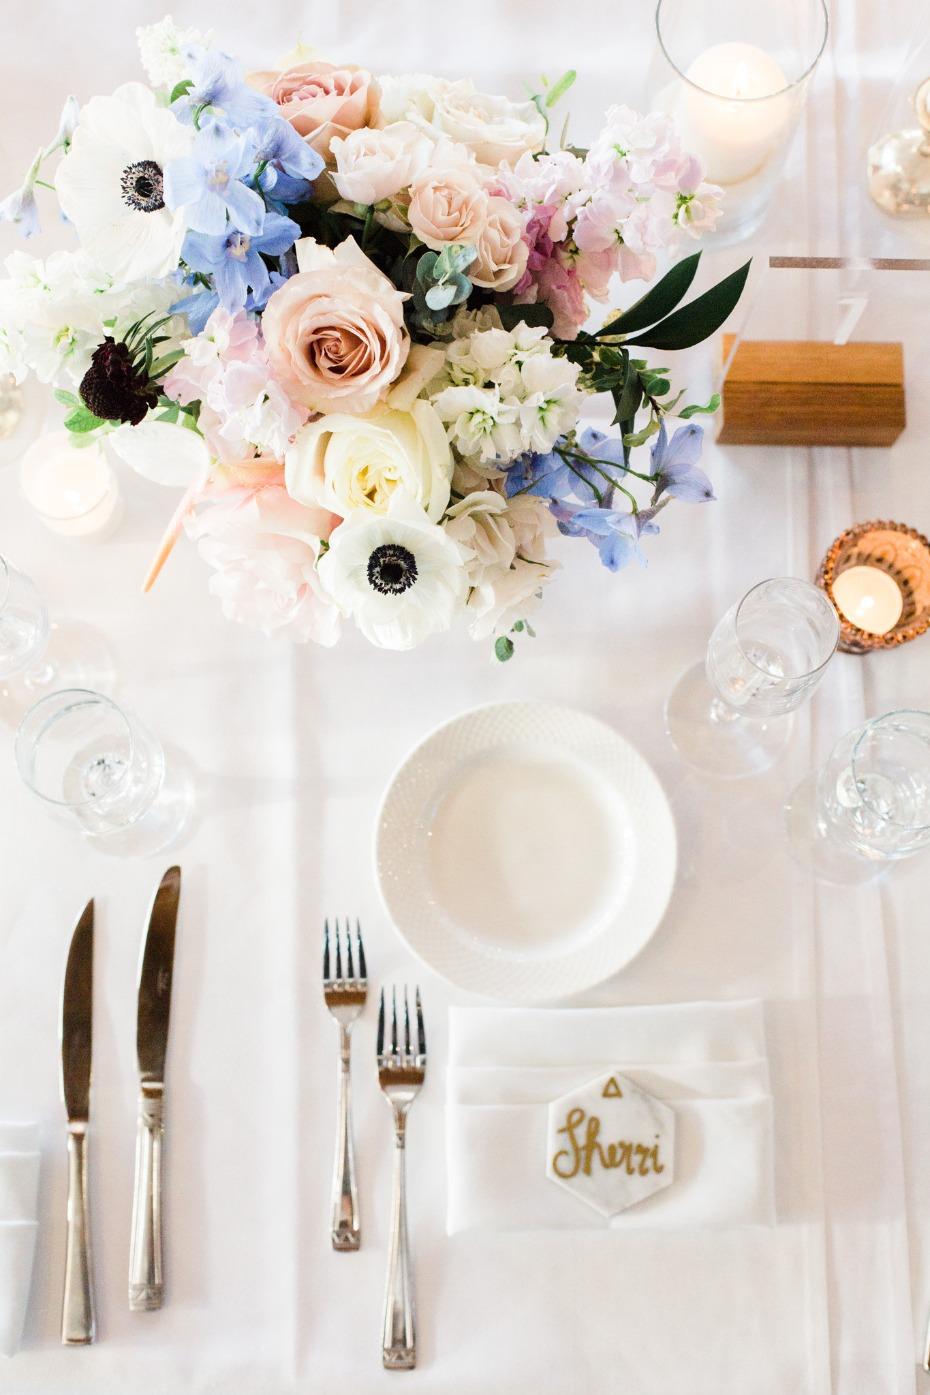 Beautiful and simple place setting